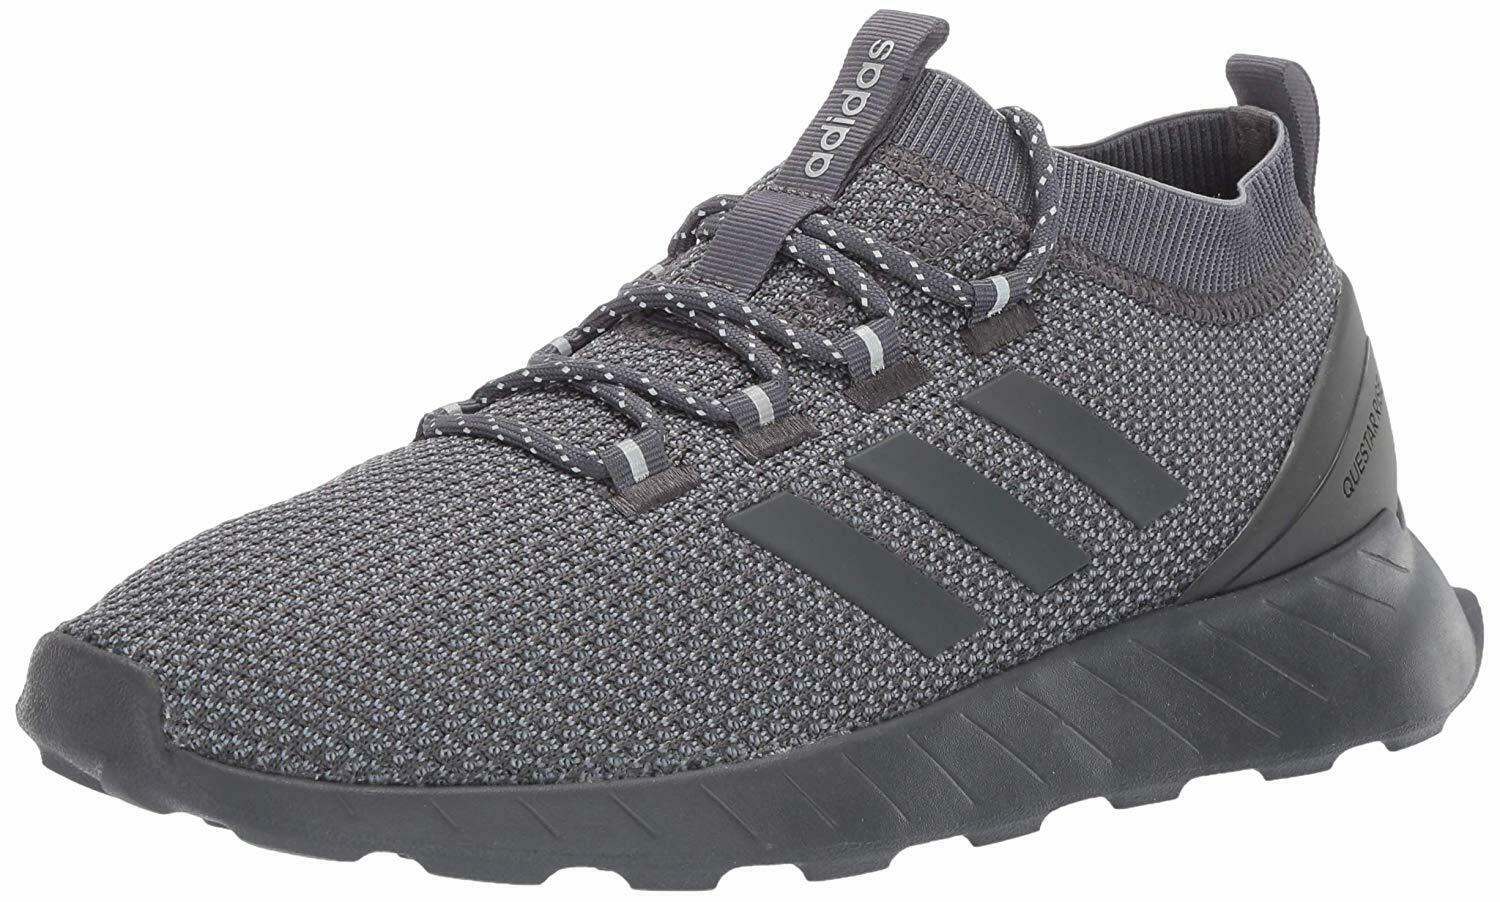 Adidas Men's Questar Rise Running shoes F34939 SIZE 13 NEW IN THE BOX